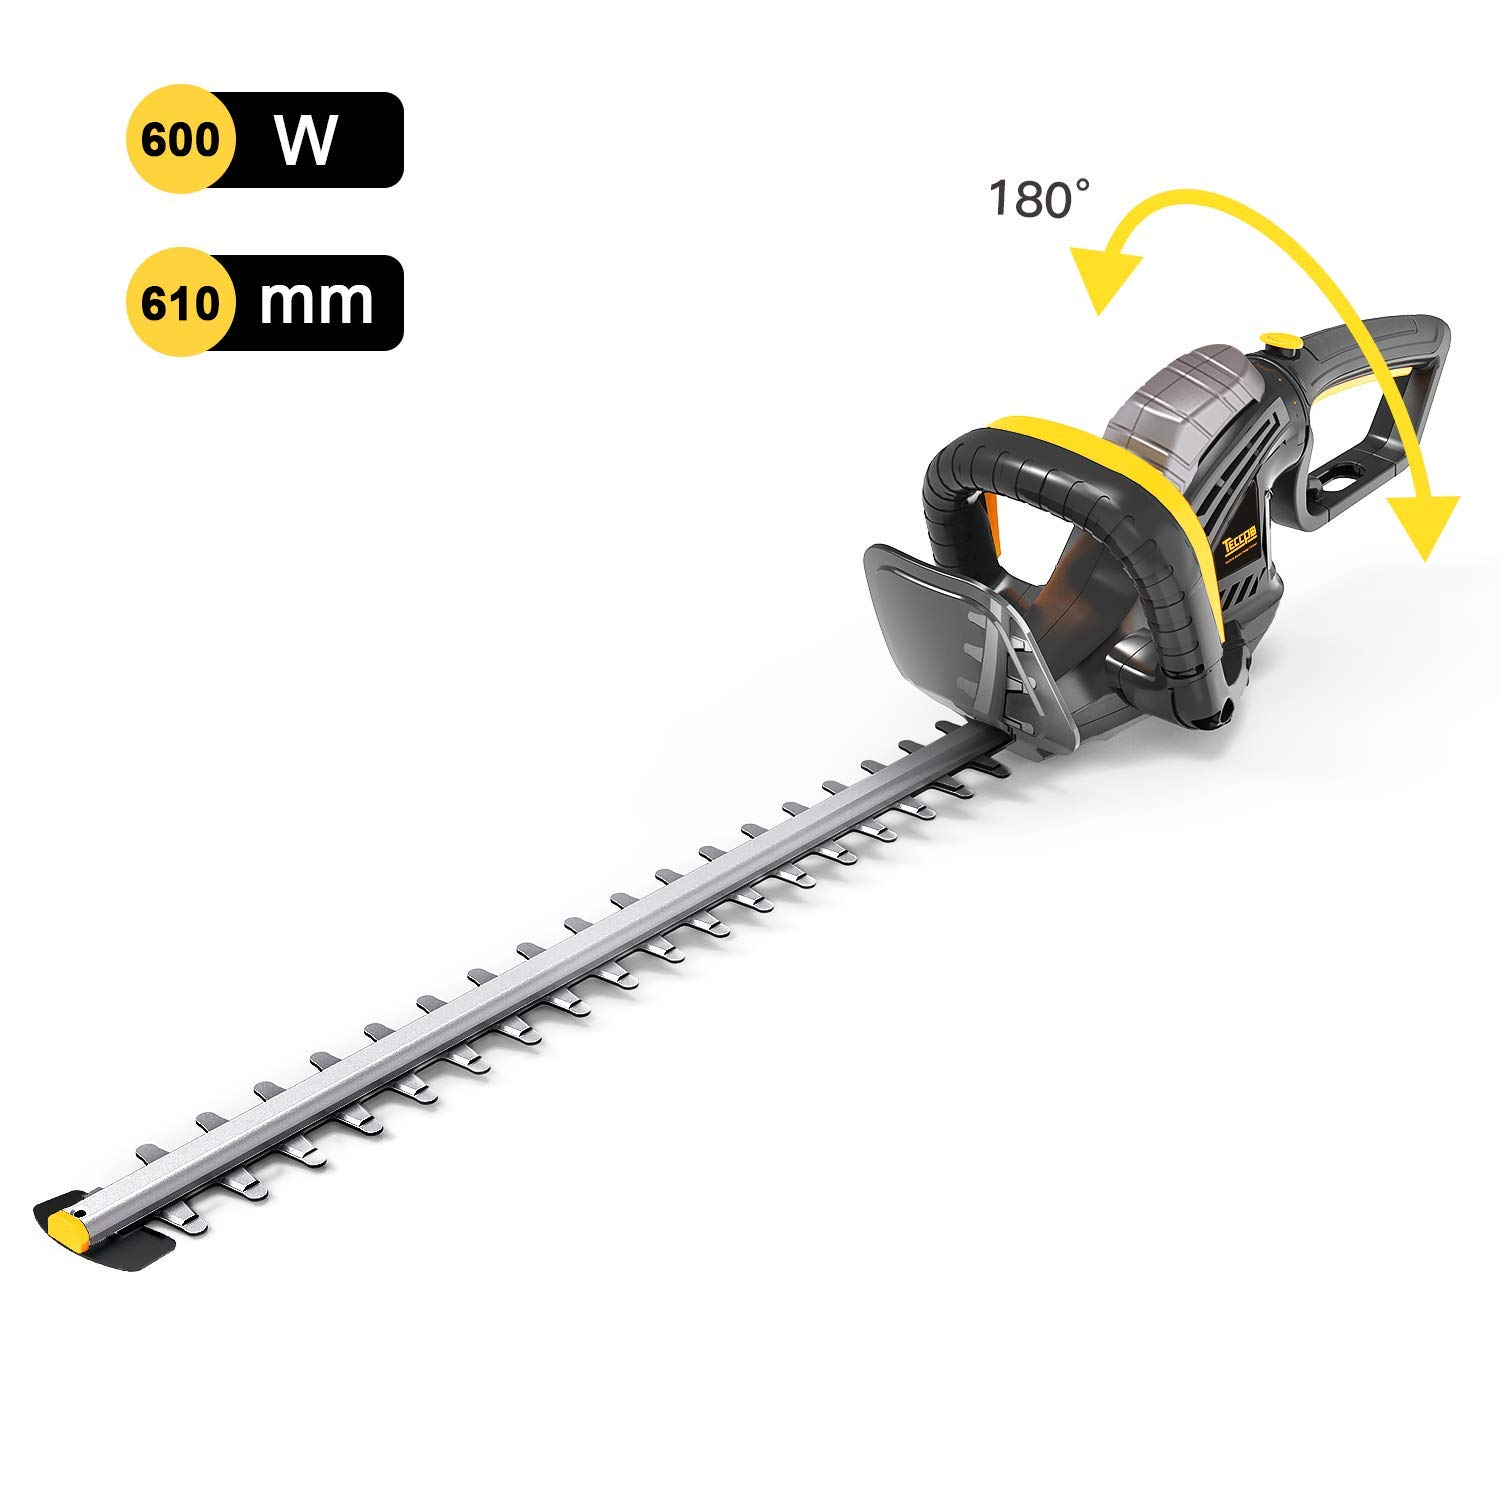 TECCPO Electric Hedge Trimmer, 600W Hedge Cutter with 180° Adjustable Rotary Handle, 610mm Blade Length, 24mm Tooth Opening, Integrated Blade Tip Protector, 10m Cable